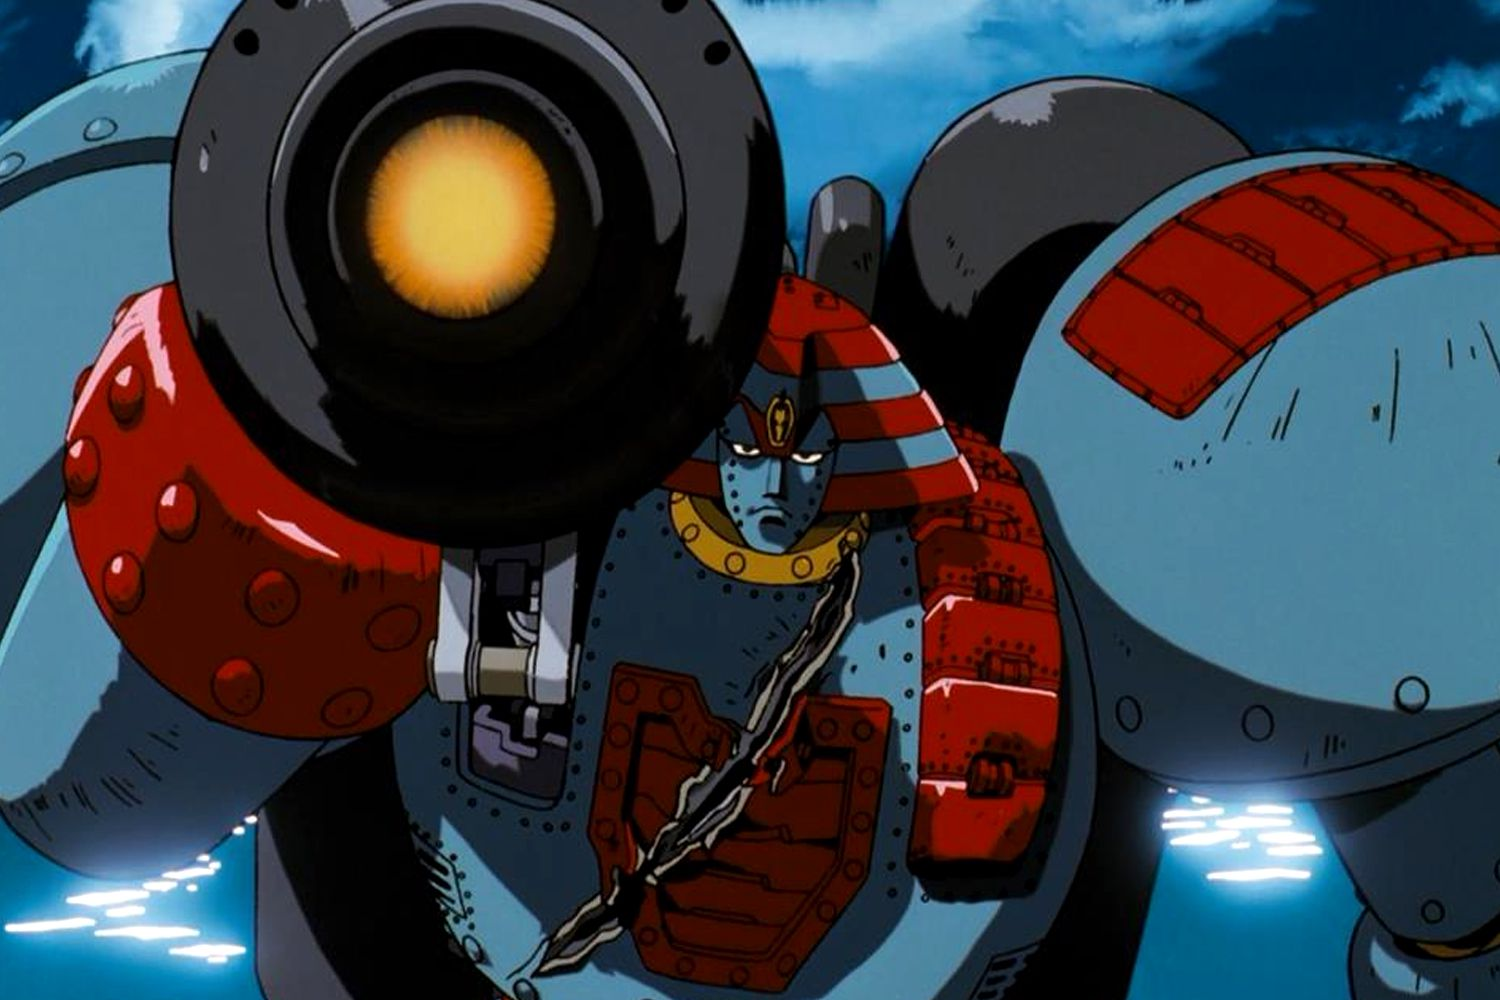 19 Must See Anime Series With Giant Robots